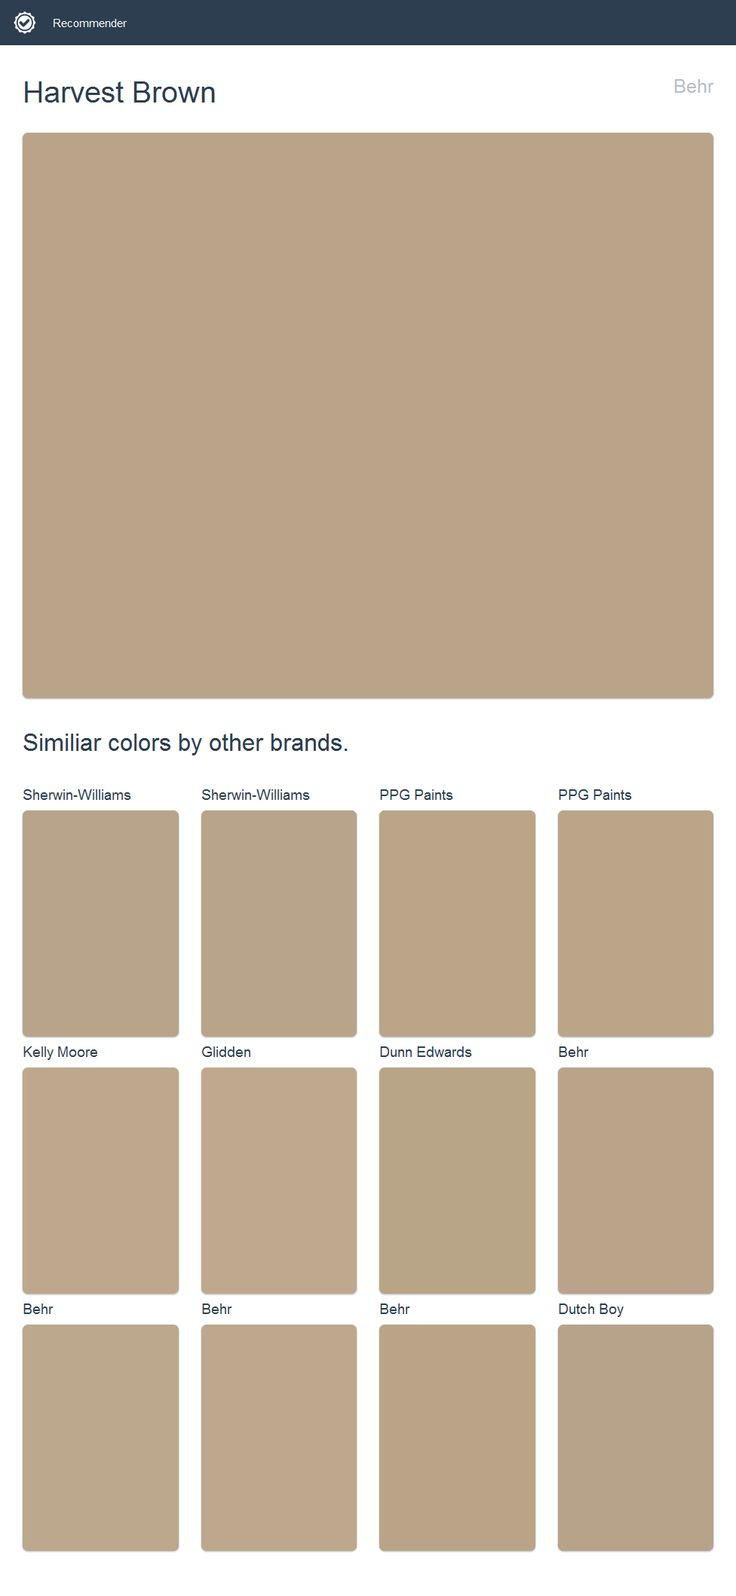 Harvest Brown Behr Click The Image To See Similiar